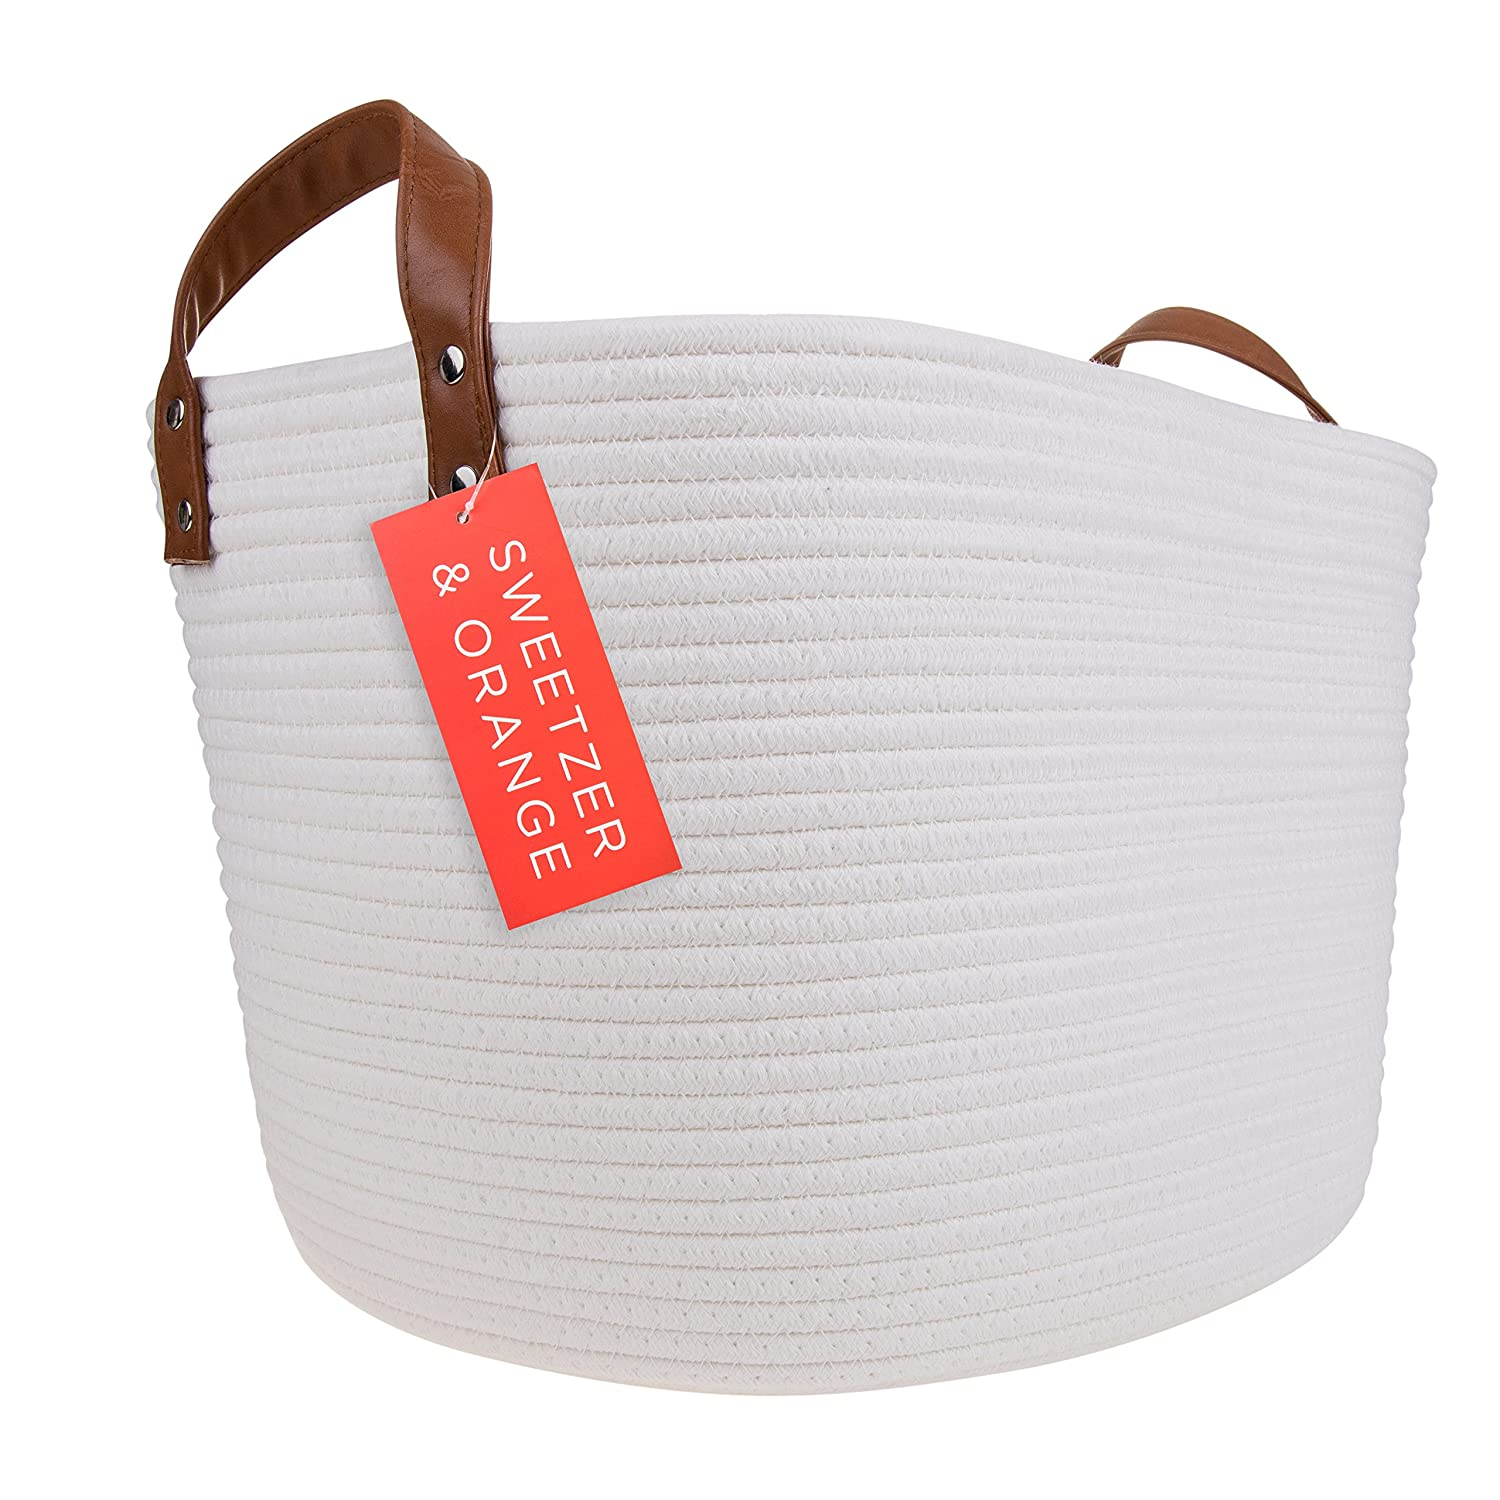 Sweetzer & Orange Large Woven Cotton Rope Storage Basket (Vegan Leather Handles) - Blanket Storage Baskets, Laundry Basket, Toy Storage, Nursery Hamper - Decorative Off White Basket for Living Room